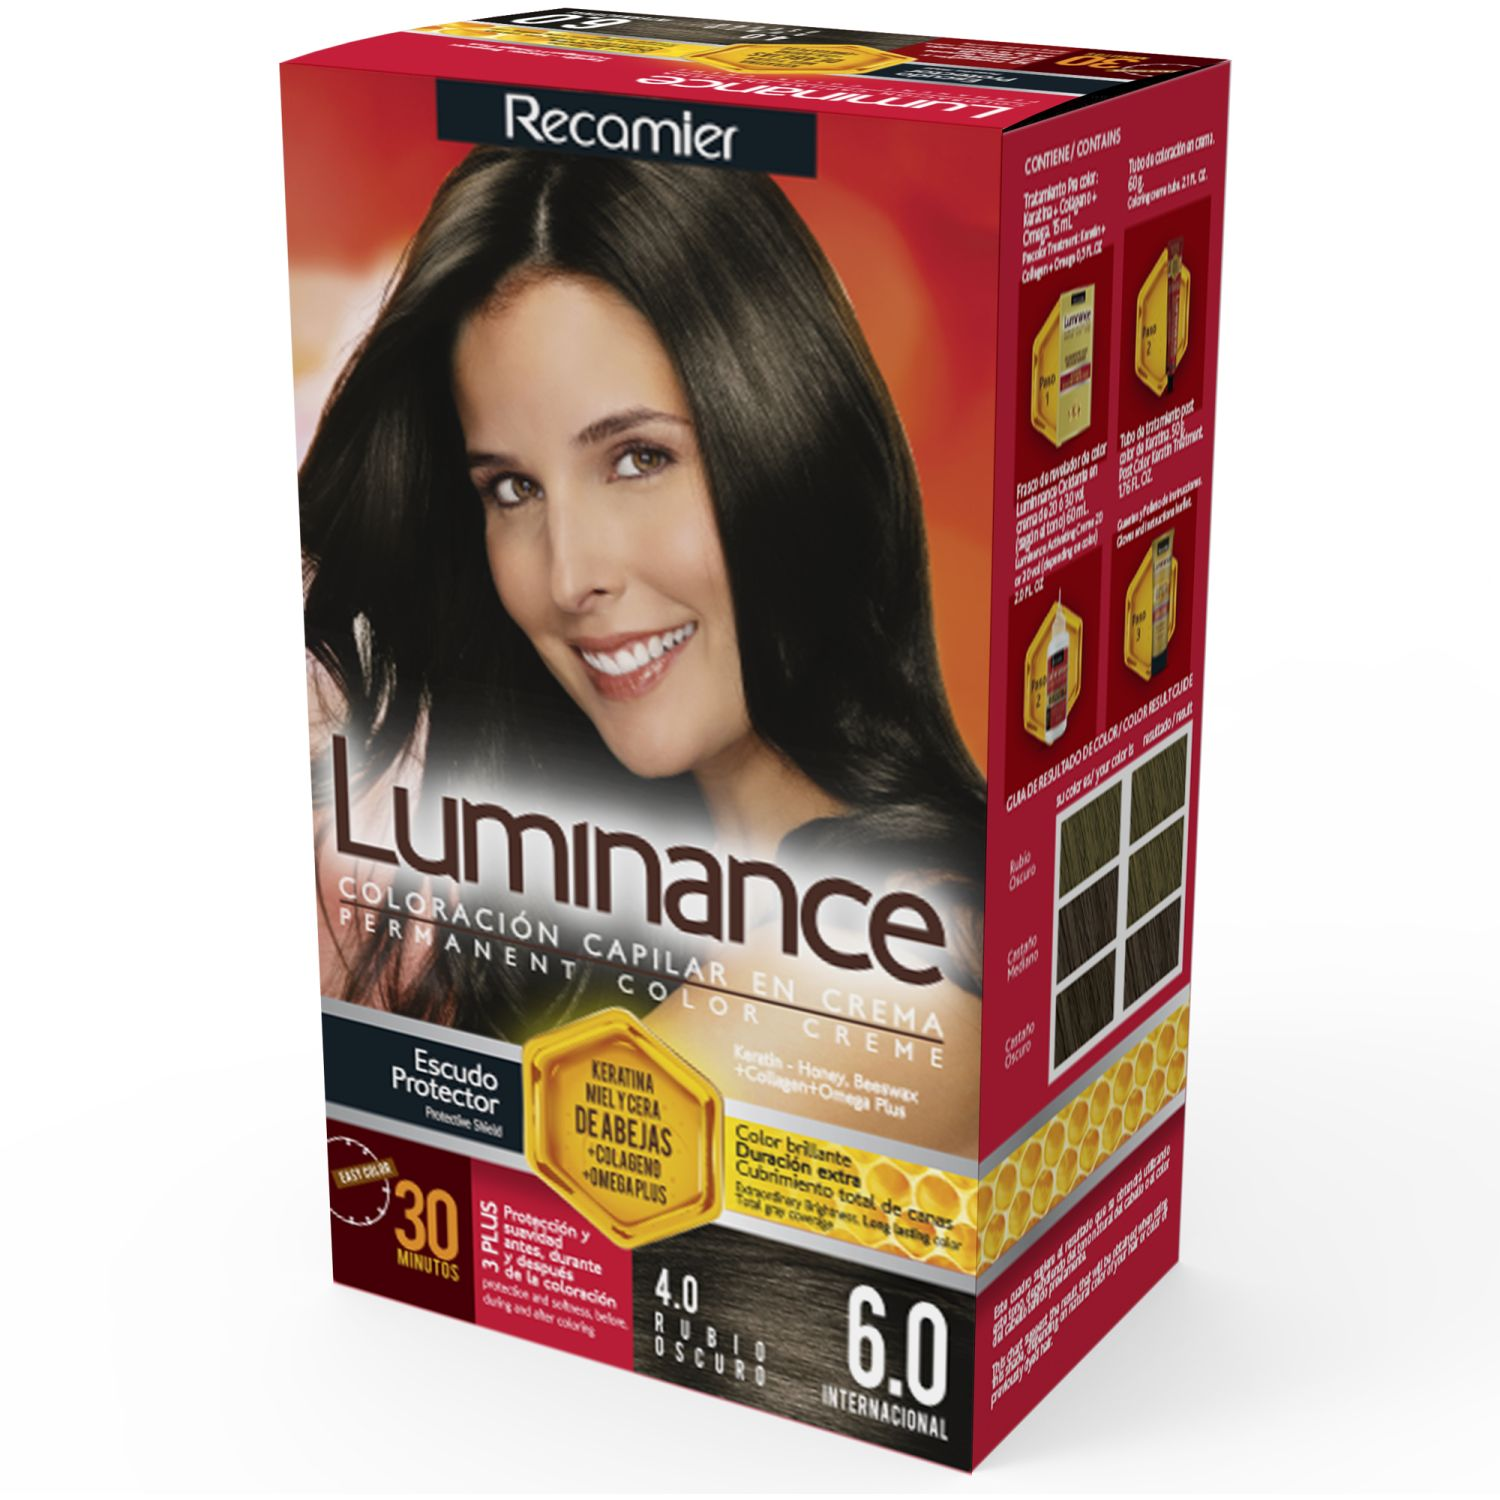 LUMINANCE Tinte Luminance Kit 6.0 60g RUBIO OSCURO Tintes